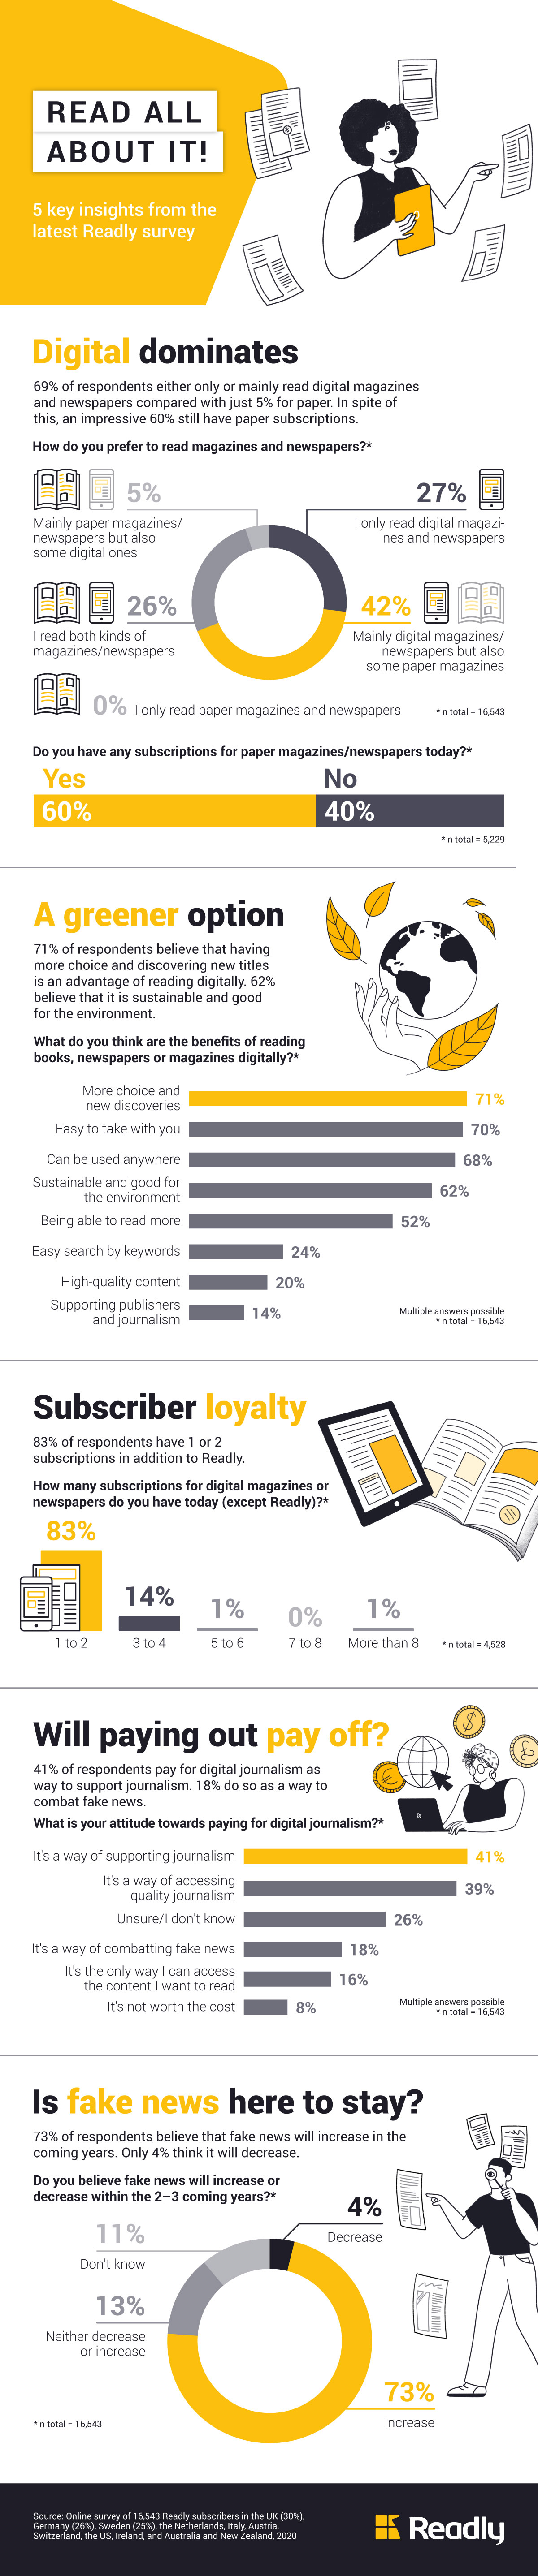 Infographic: Read all about it! 5 key insights from the latest Readly survey   Statista